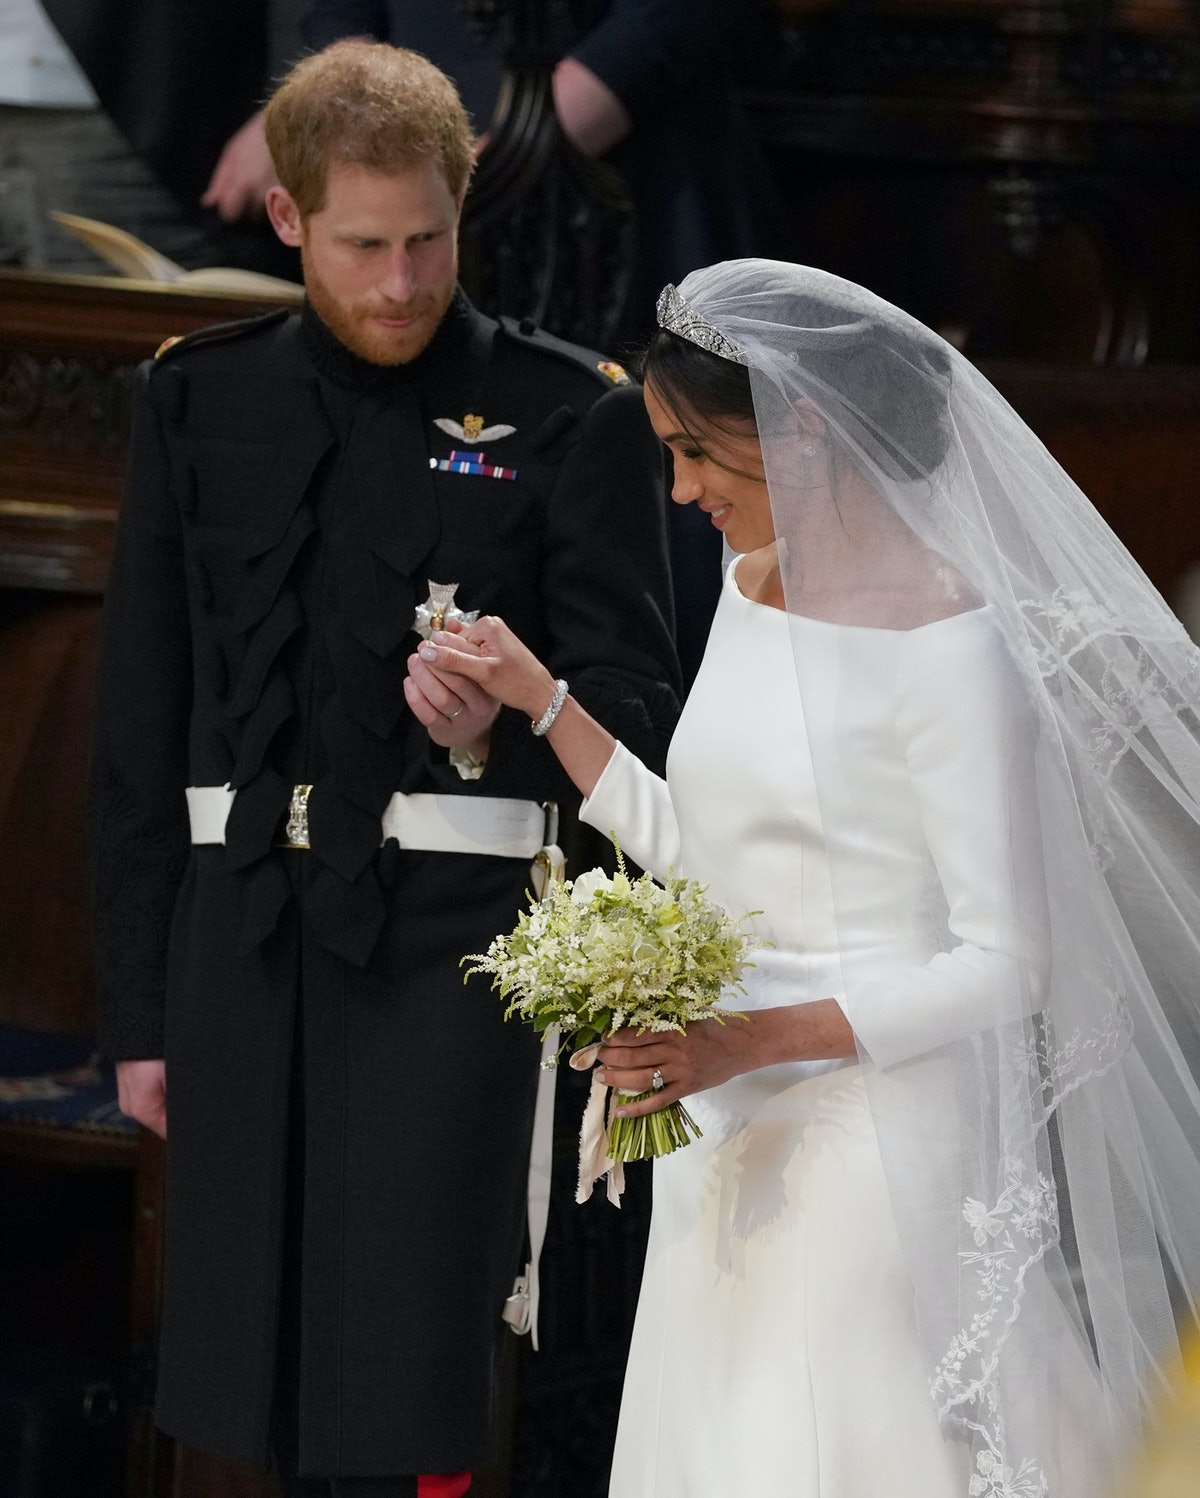 Meghan Markle, Duchess of Sussex, walk back down the aisle away with a bouquet of lillies.